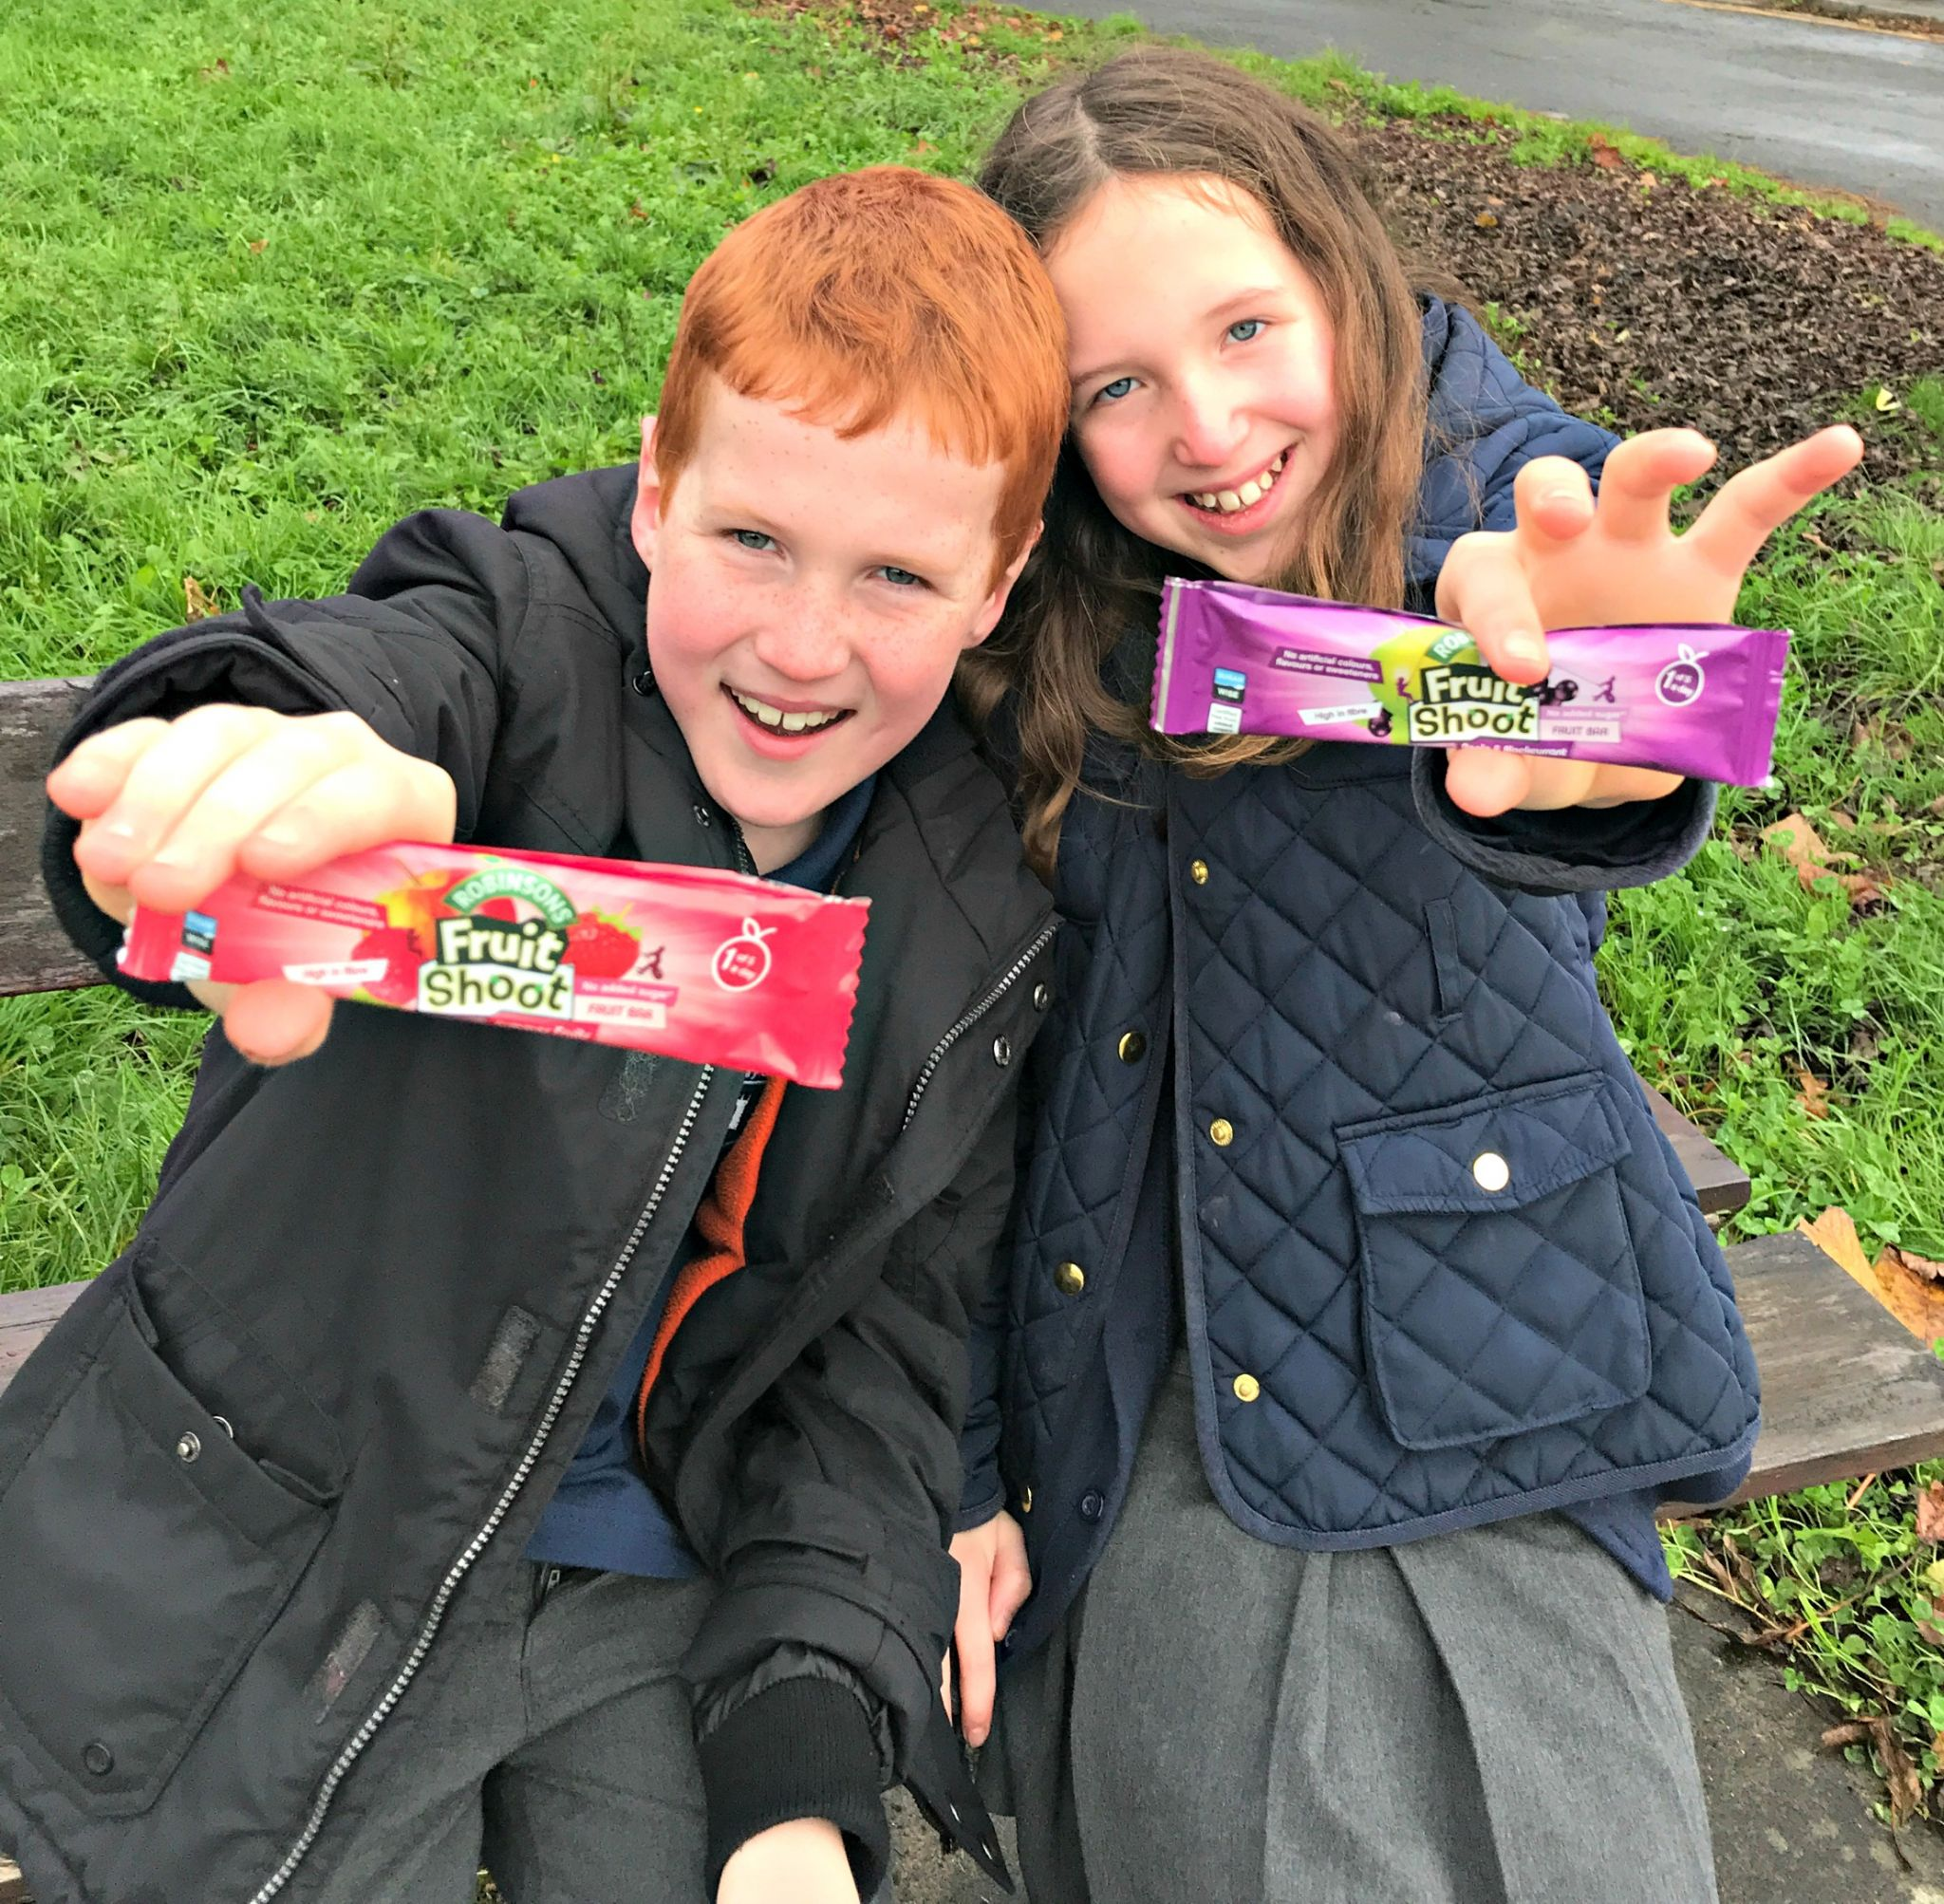 childrens snack bars - Caitlin & Ieuan with their Fruit Shoot Bars